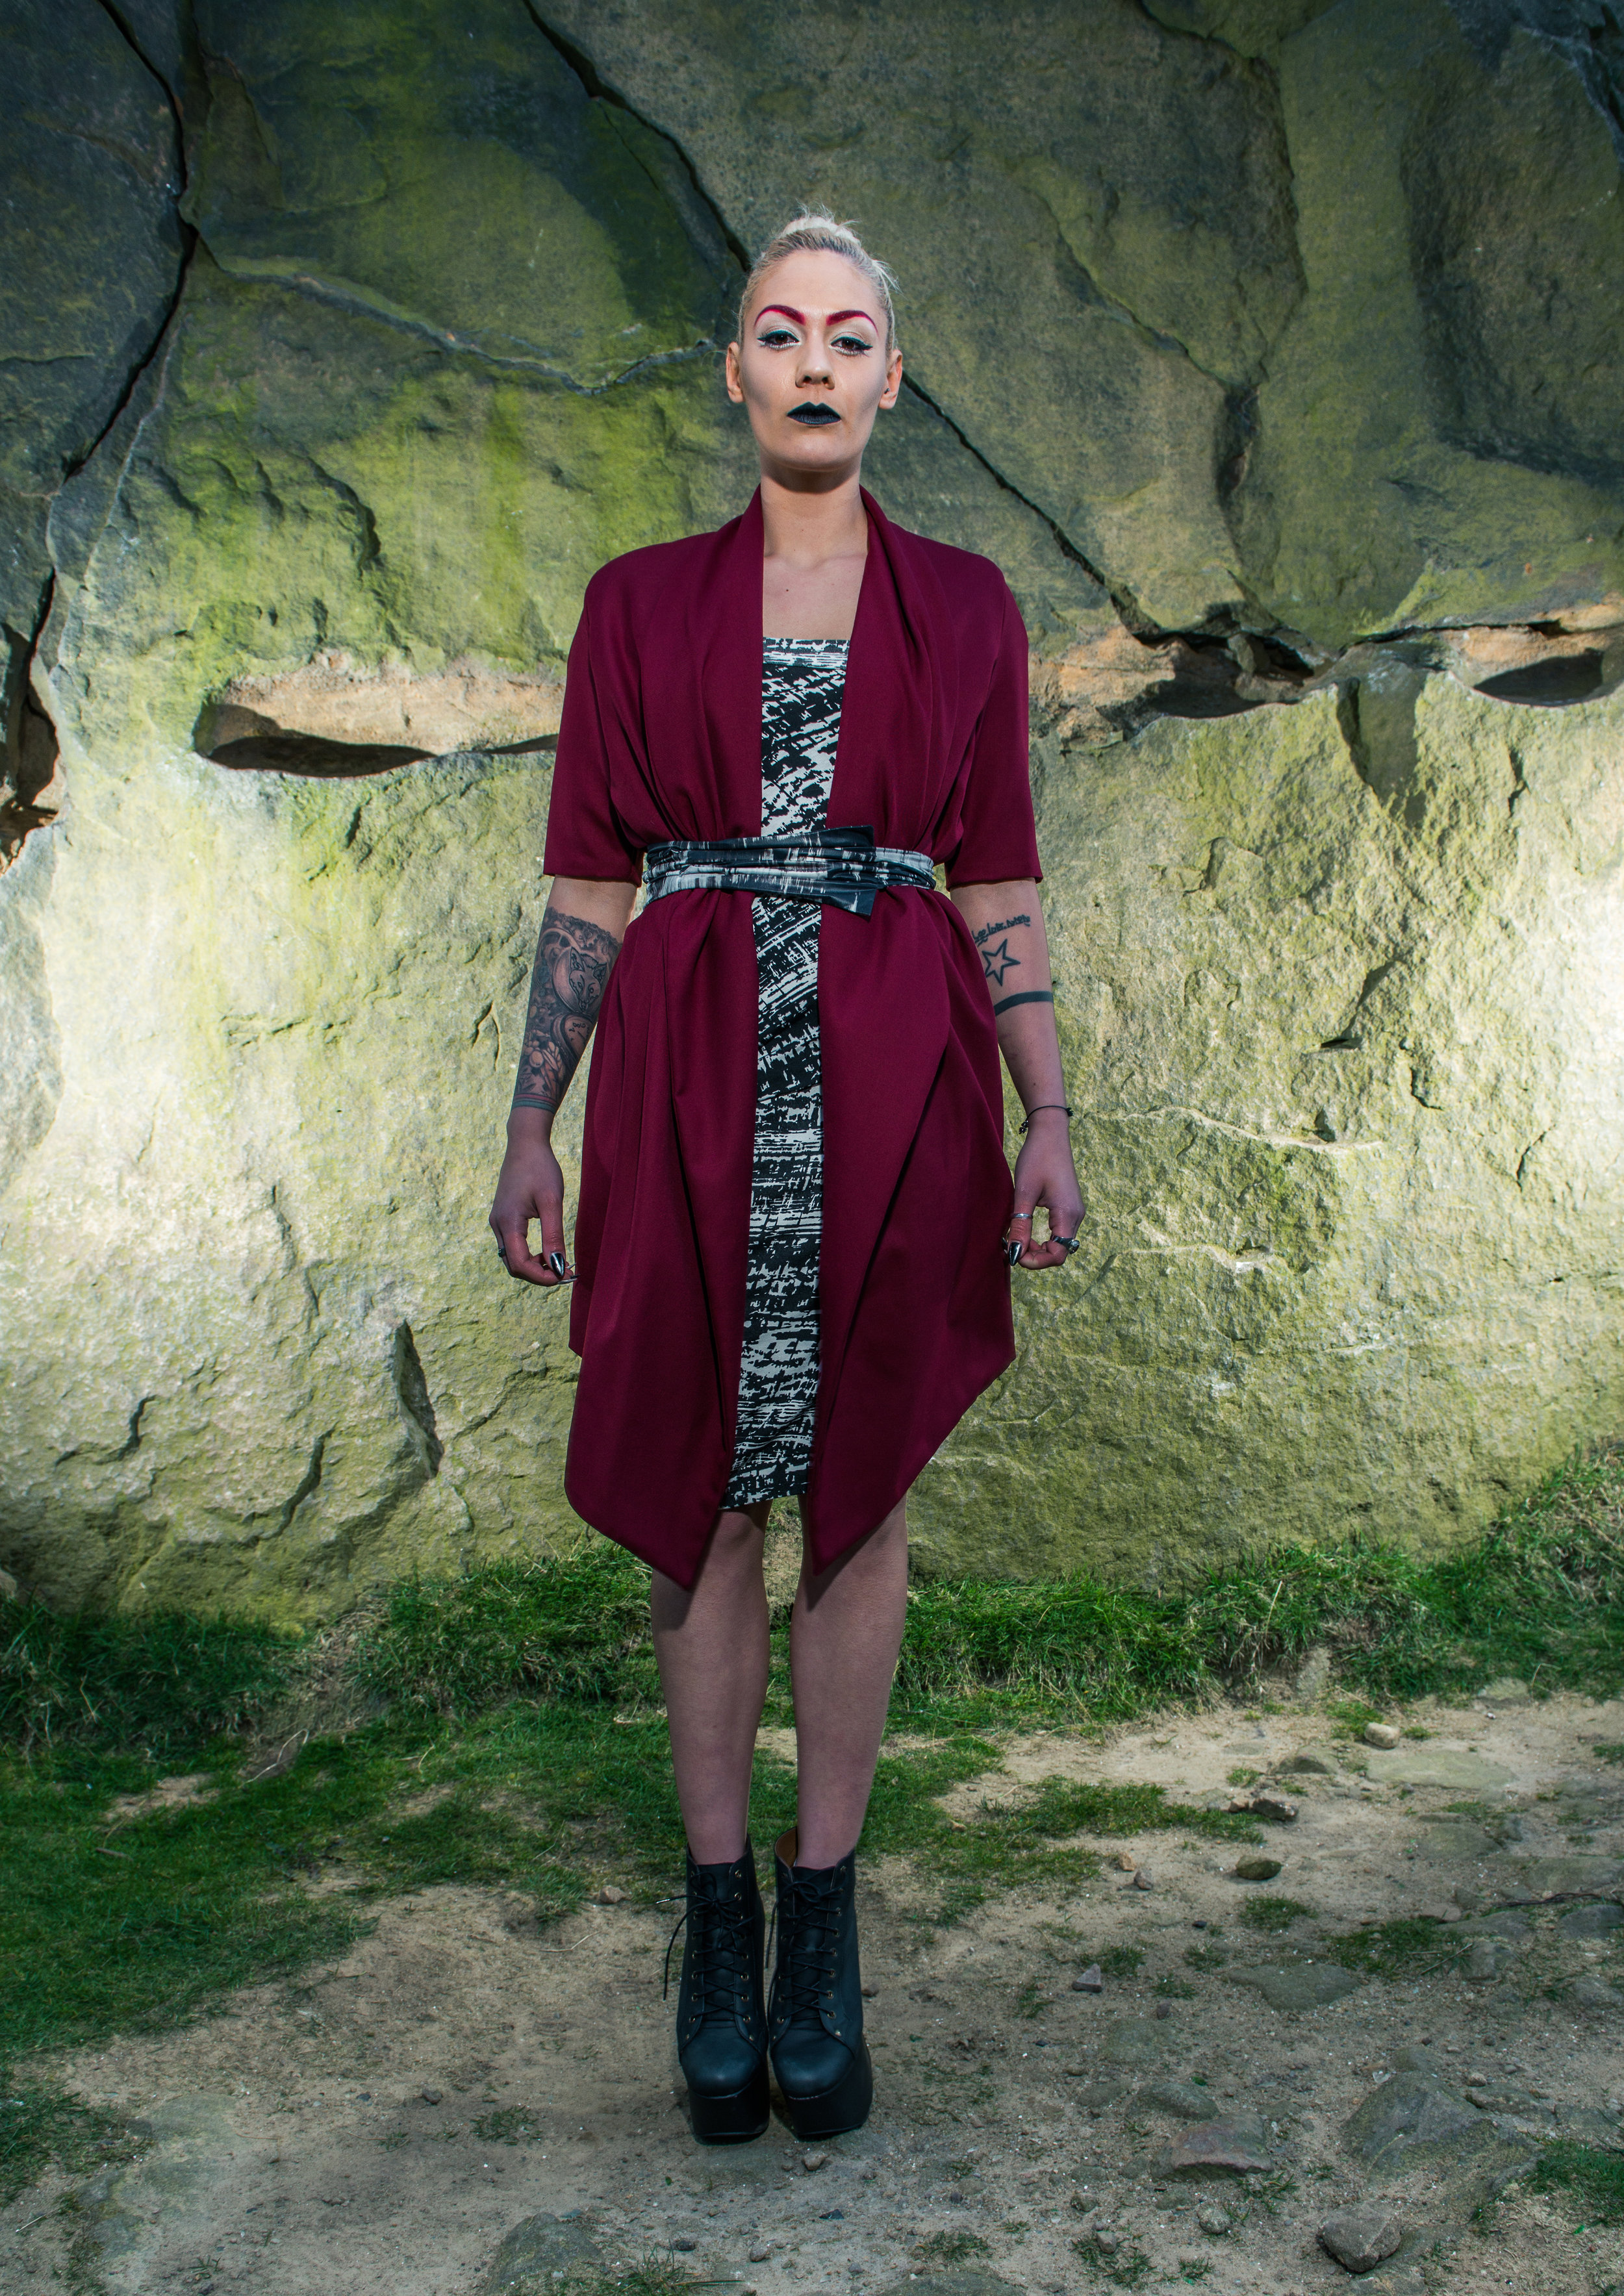 zaramia-ava-zaramiaava-leeds-fashion-designer-ethical-sustainable-tailored-minimalist-red-black-white-print-fitted-point skirt-mai-versatile-drape-cowl-styling-womenswear-models-photoshoot-location-30